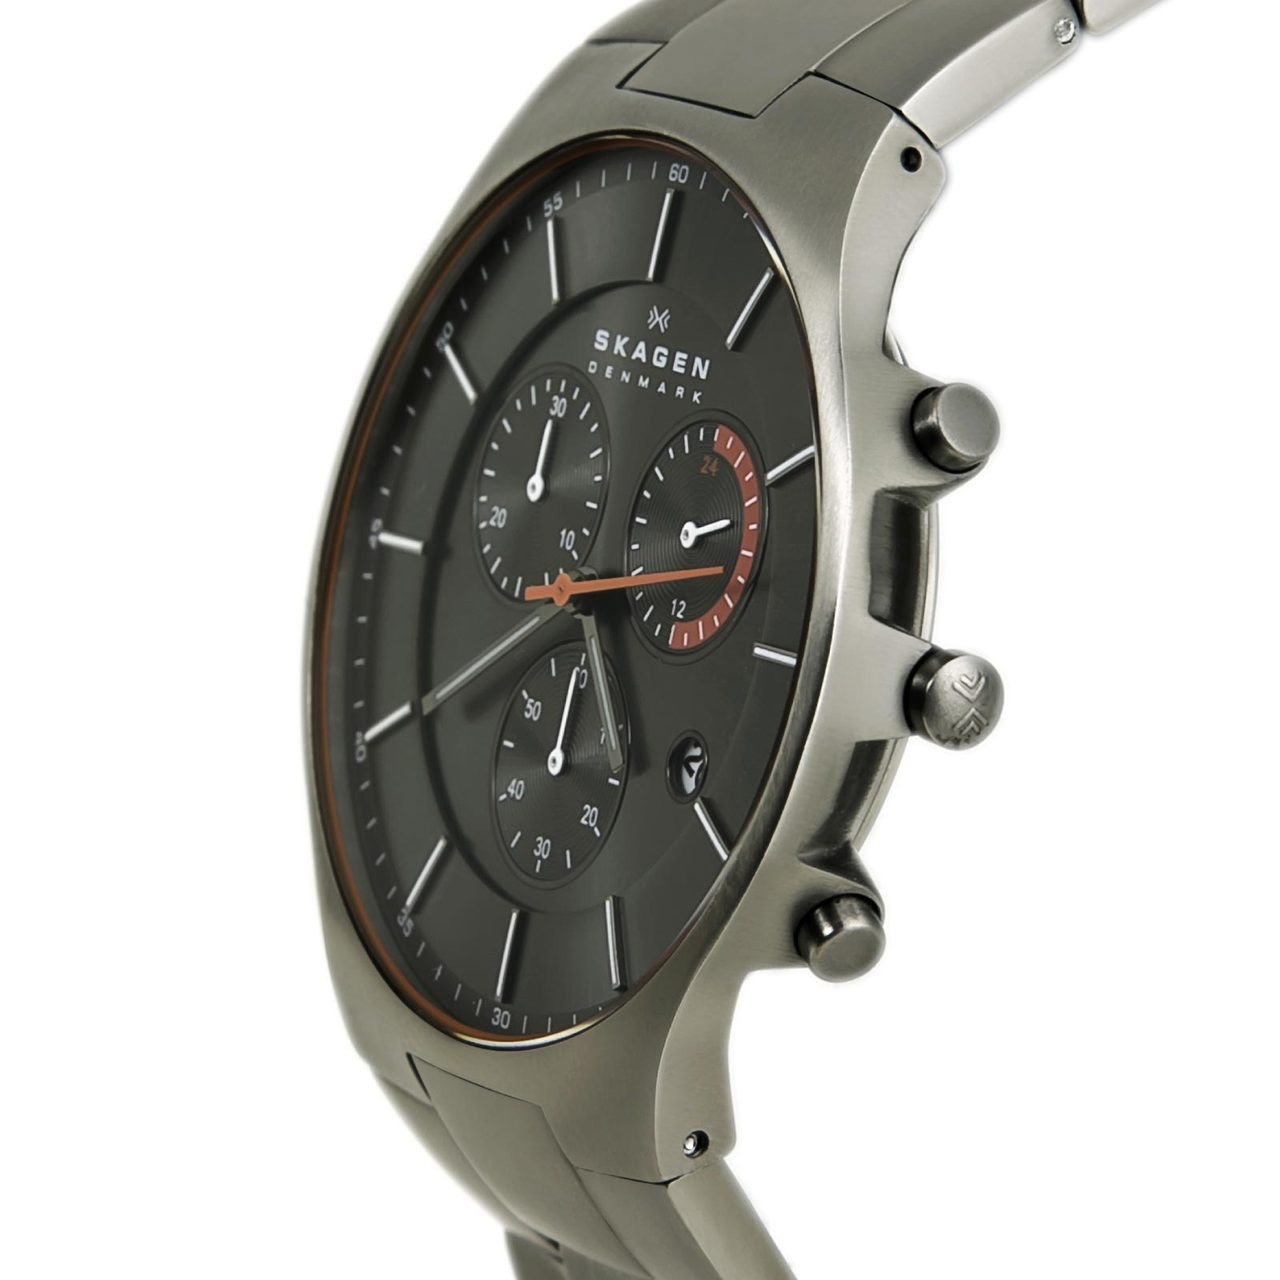 Watch Review - Skagen SKW6076 Aktiv Titanium Chronograph Steel Link Balder Watch